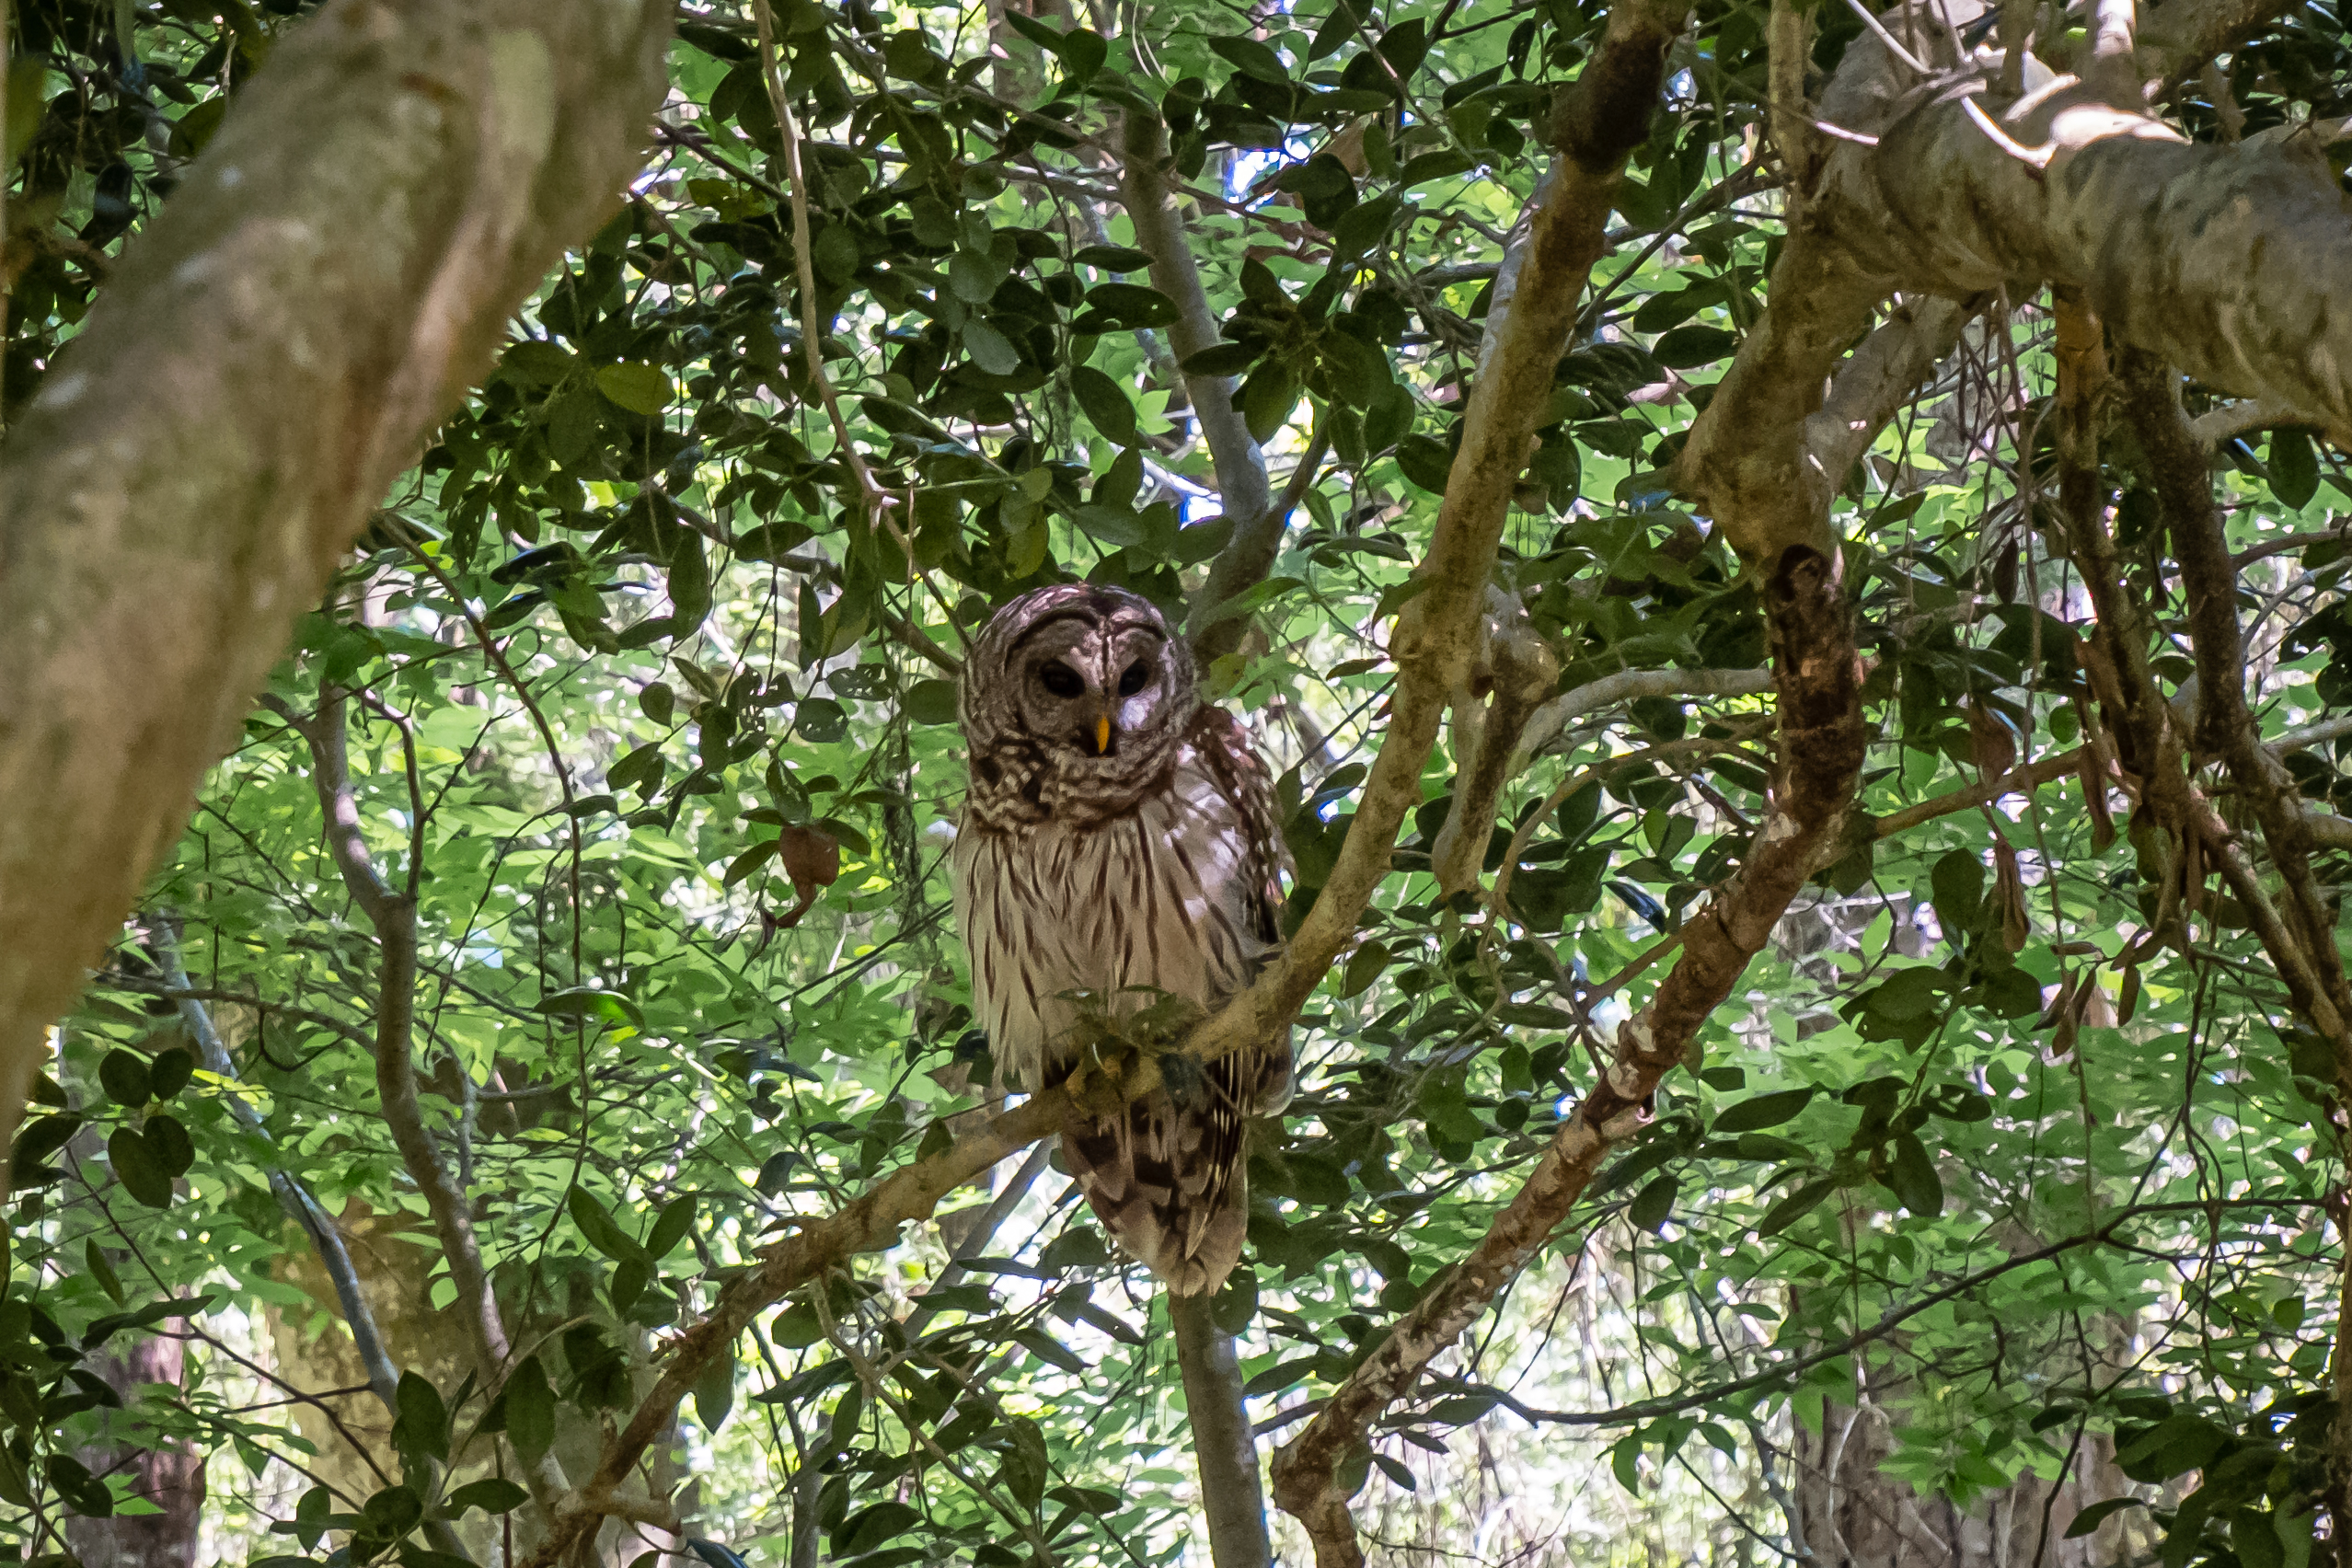 owls in Florida state parks